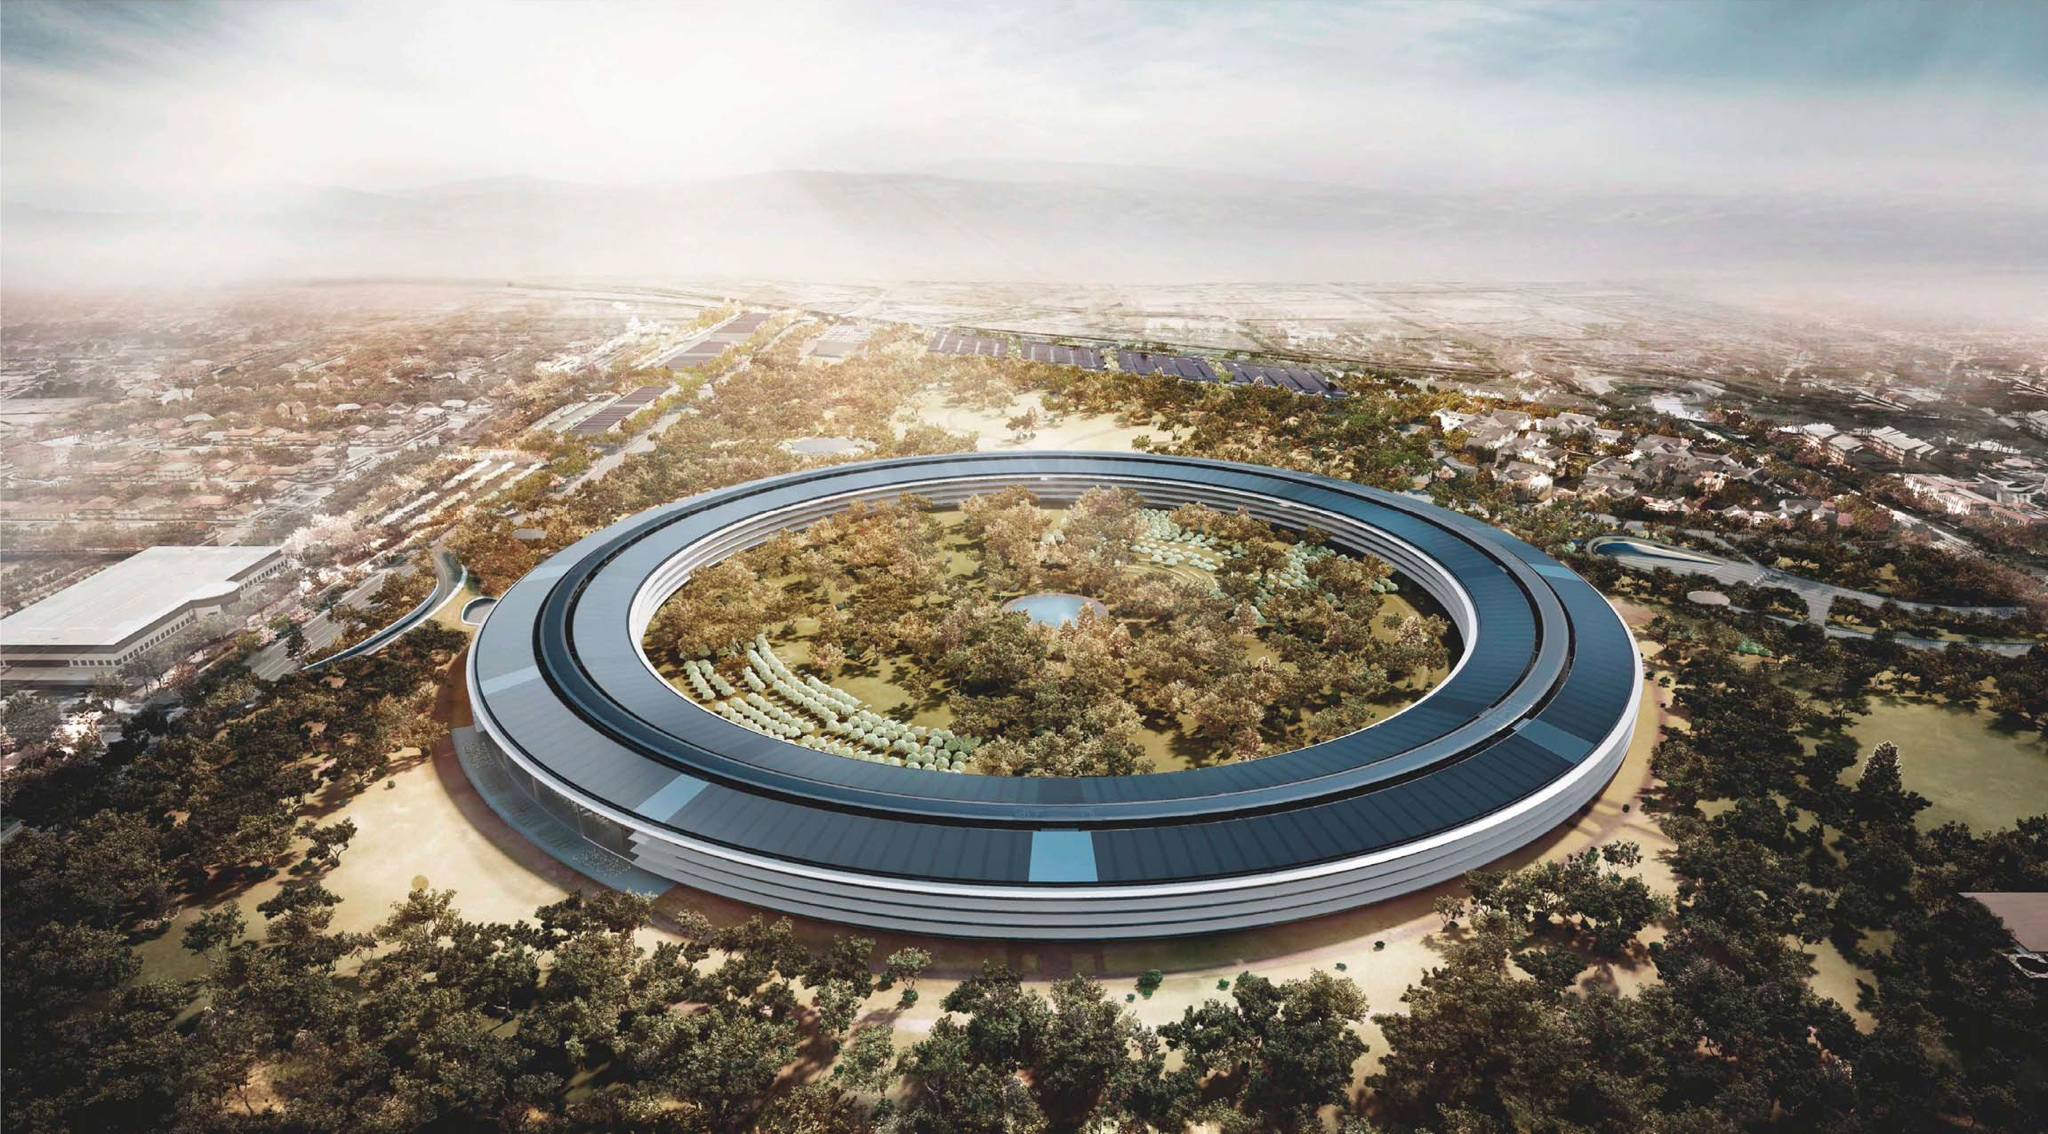 Apple Campus 2 (Rendering 001, Retina-optimized)